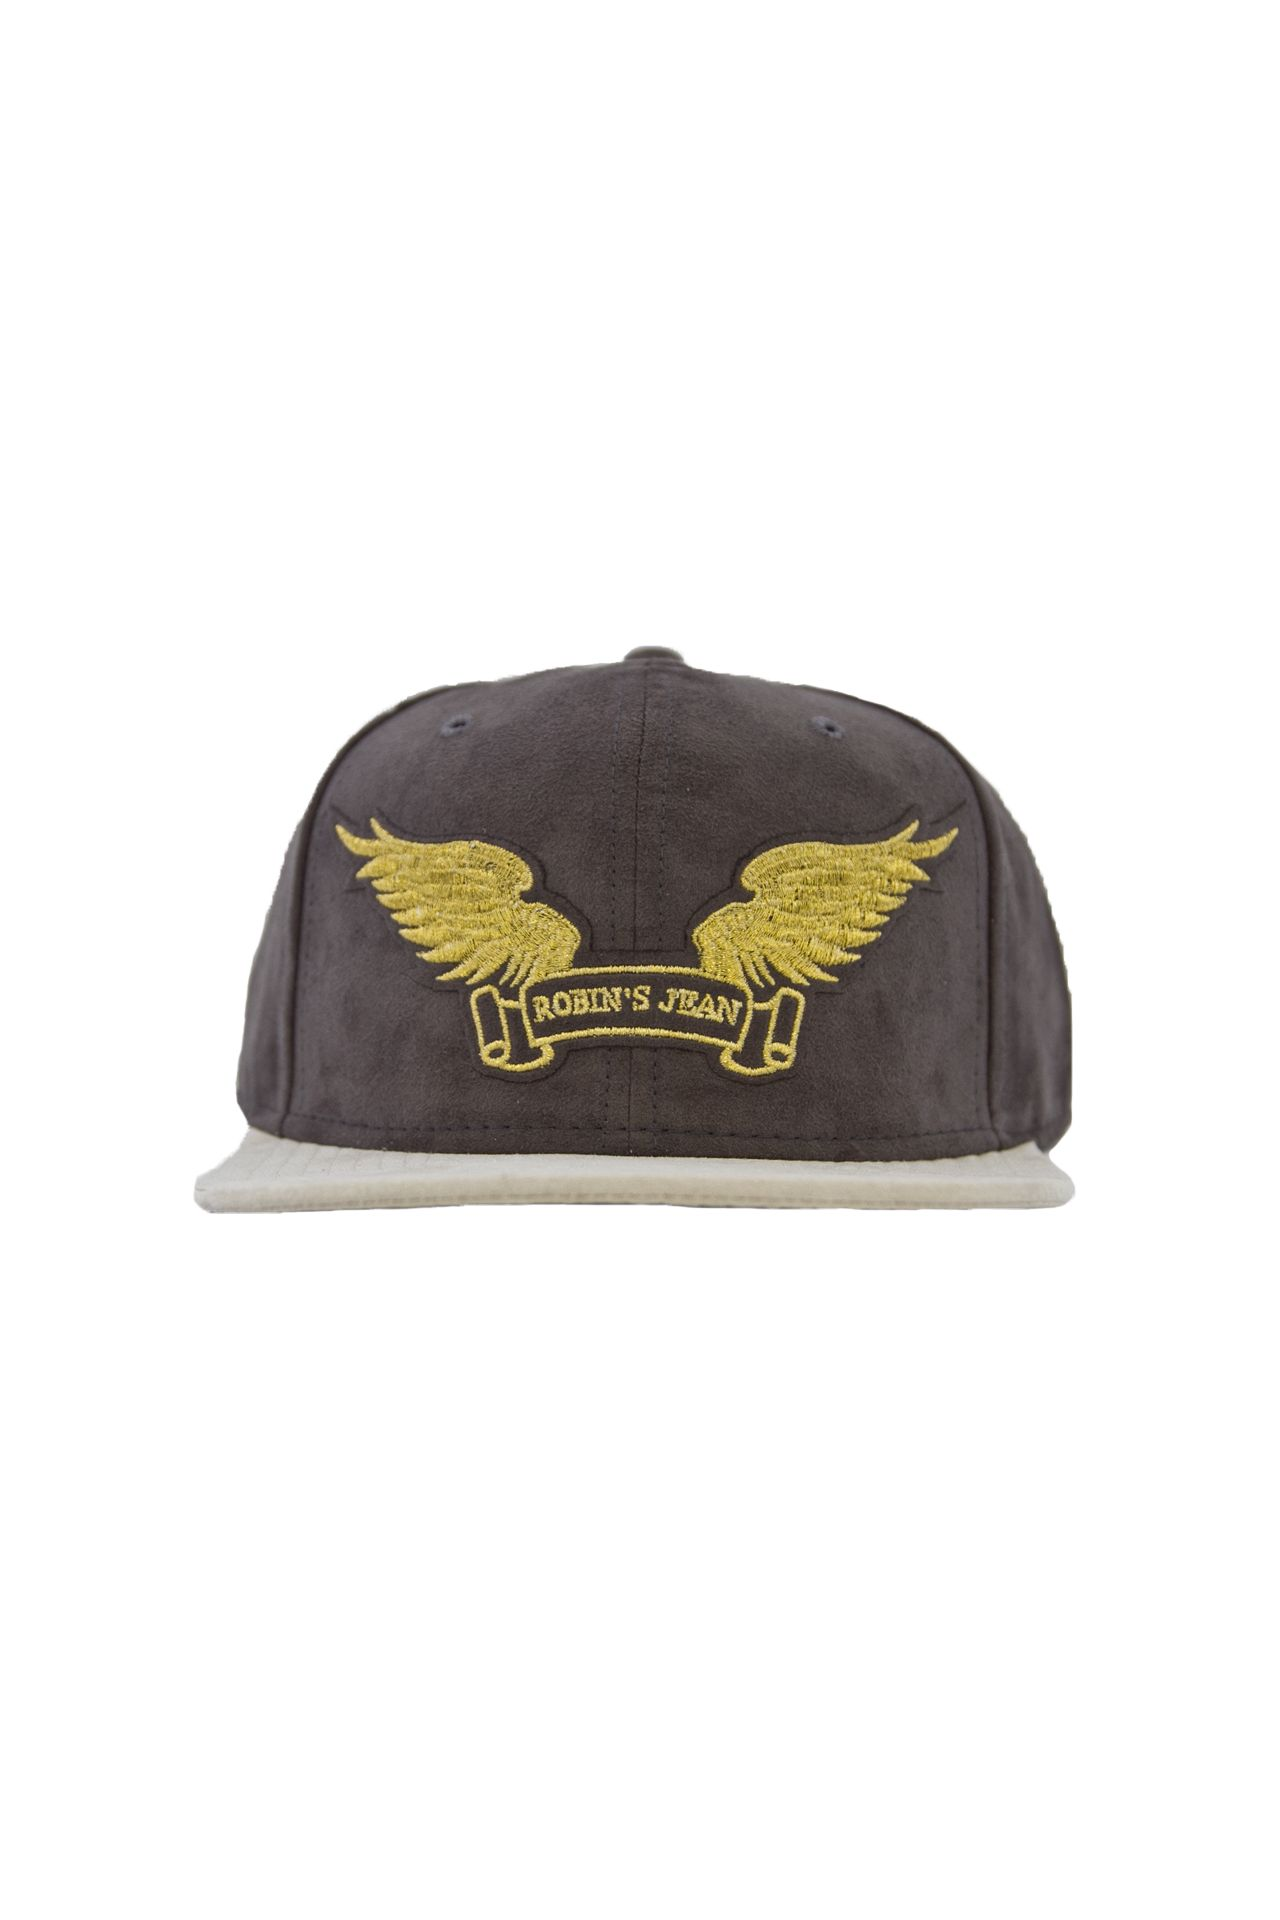 CHARCOAL SUEDE CAP GLD WINGS